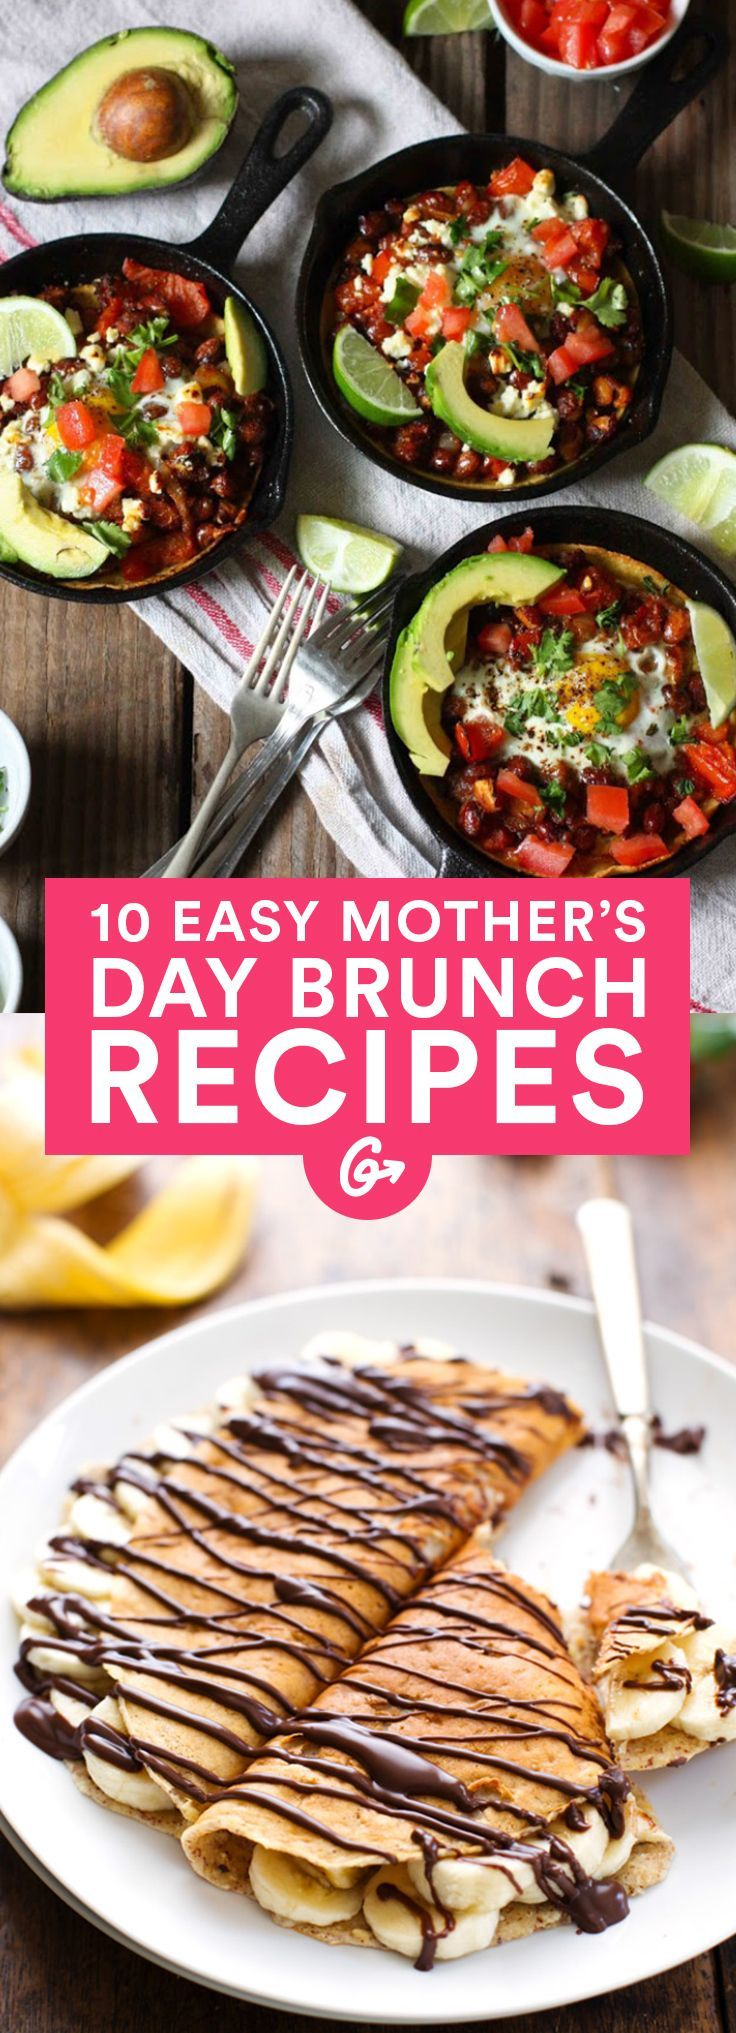 10 Easy Brunch Recipes To Make For Mothers Day Pinterest Easy